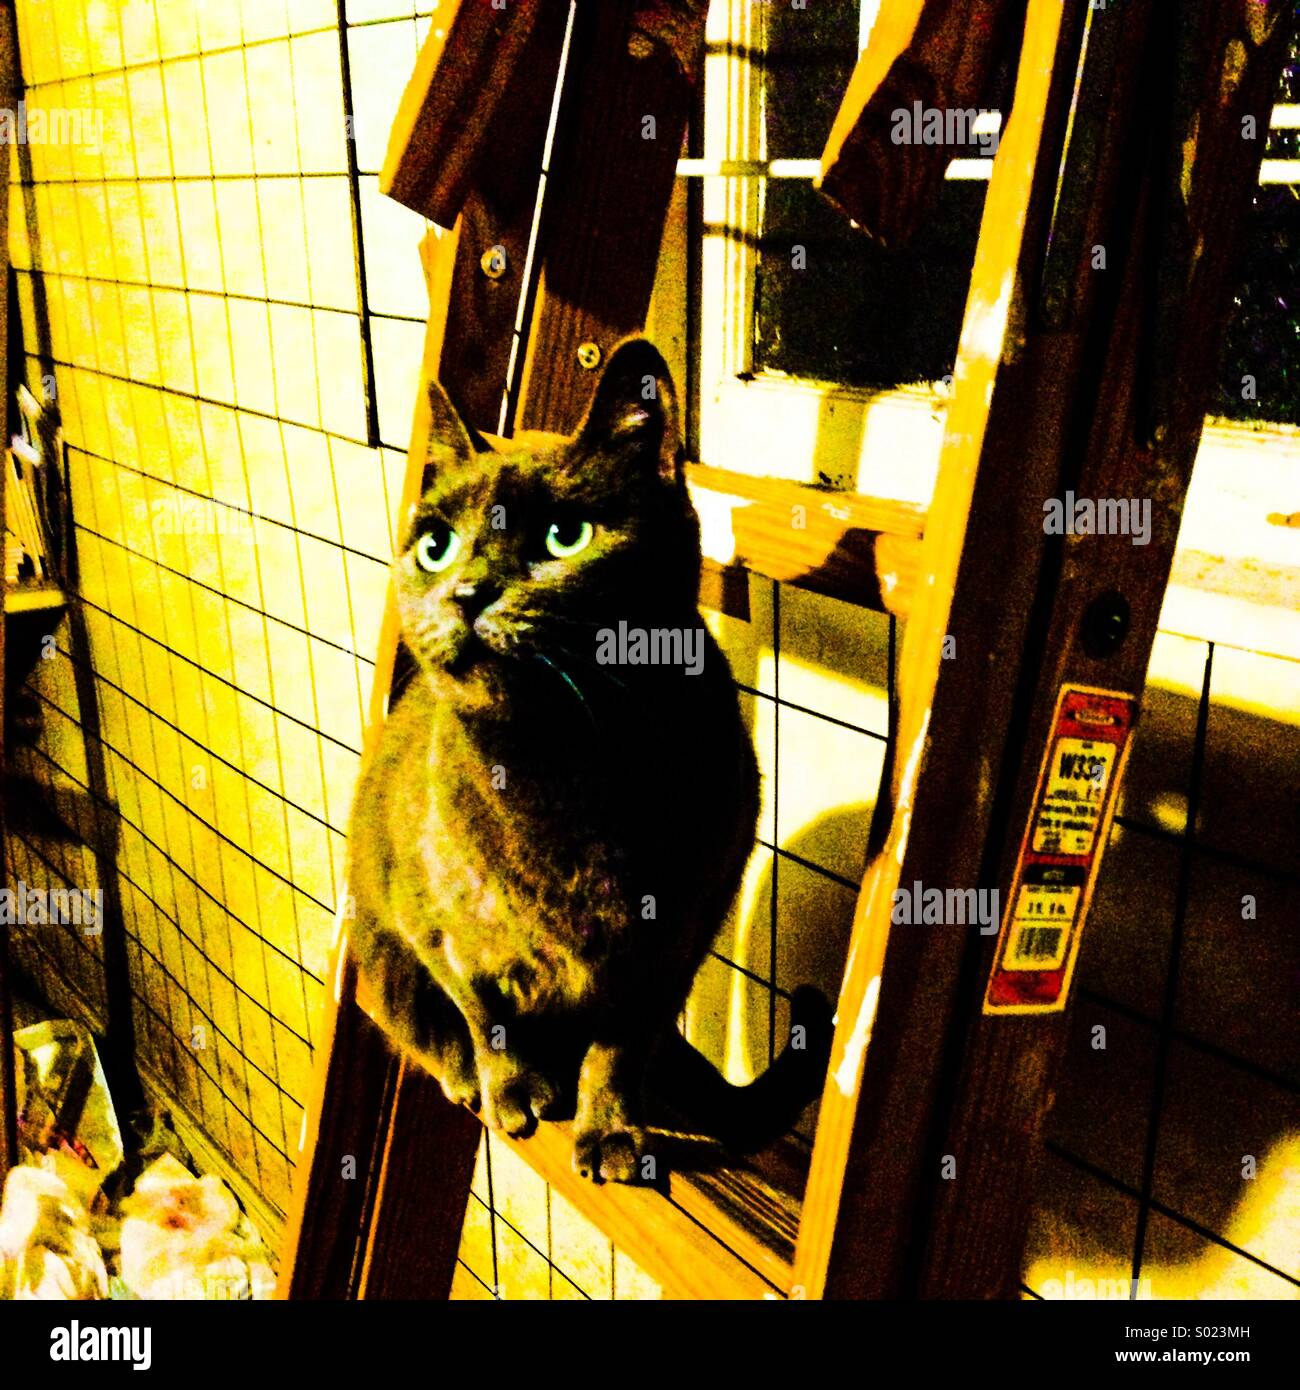 Cat on a ladder. - Stock Image